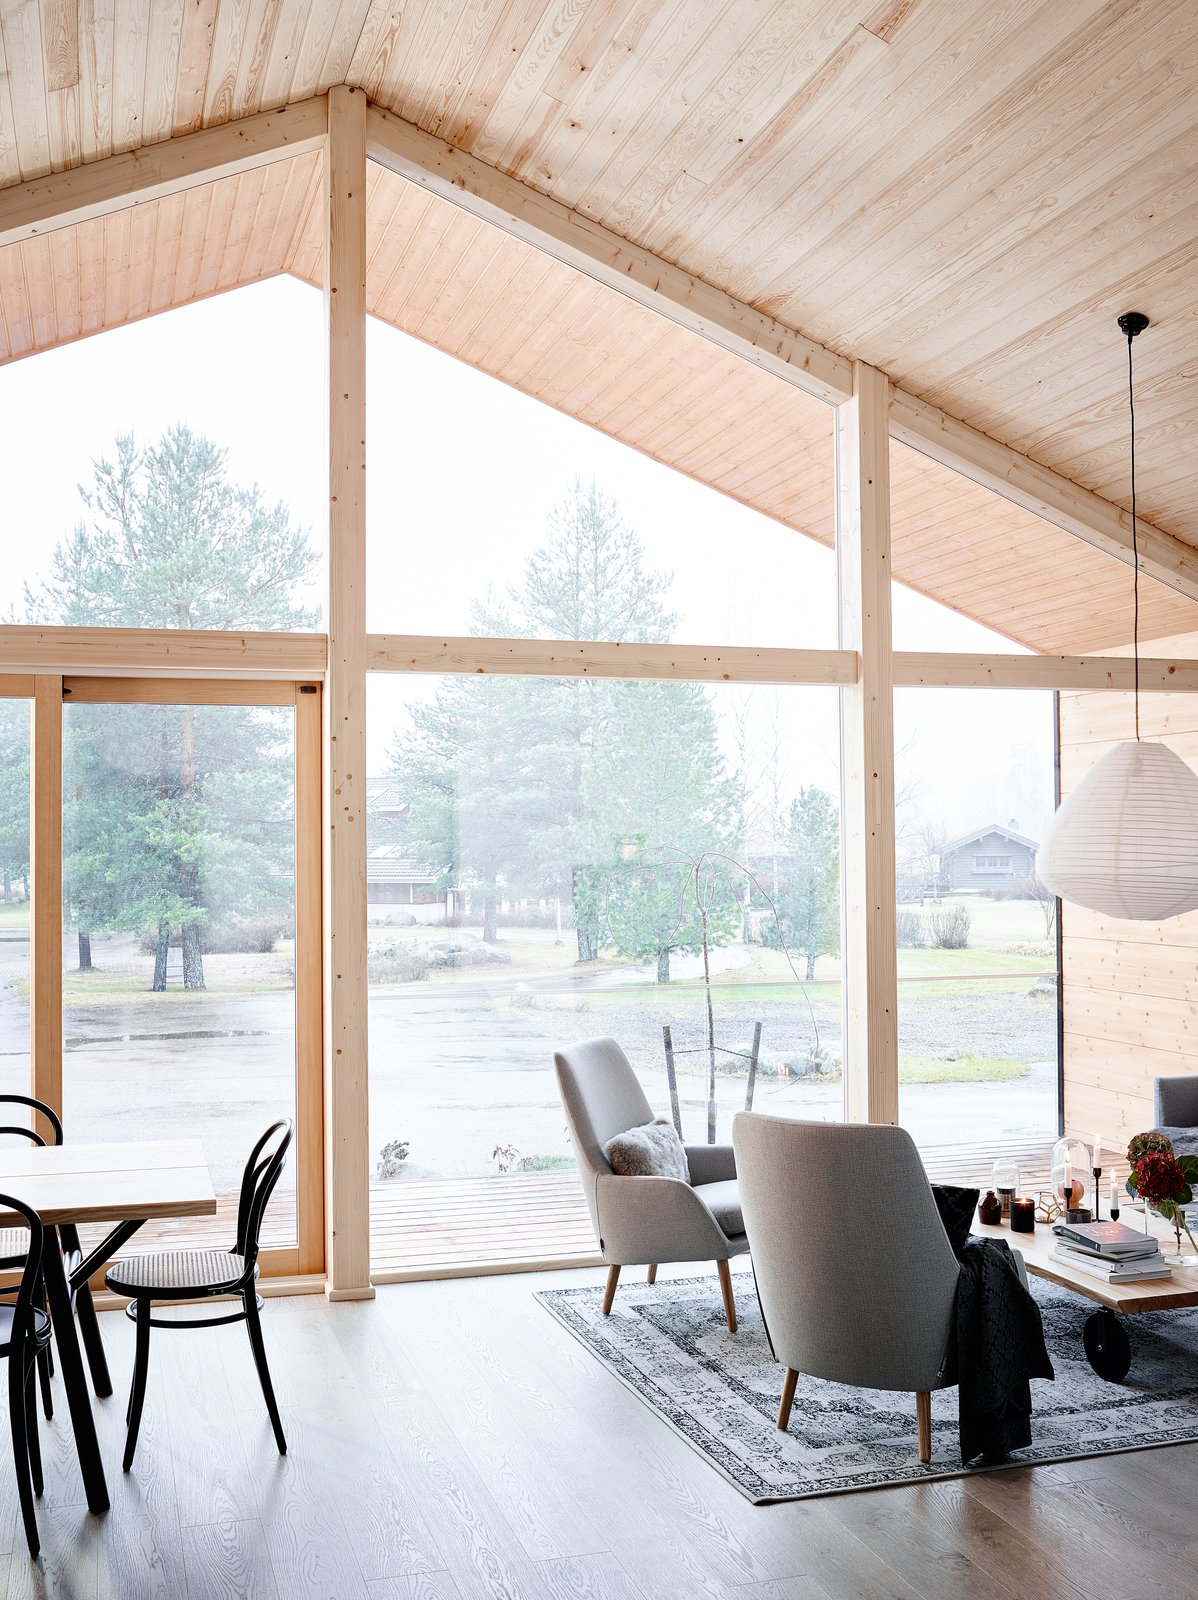 The kitchen and living area are located at the front, where the glazed façade allows more light penetration, while the bedrooms, bathroom and sauna are located at the more private areas in the back of the house.